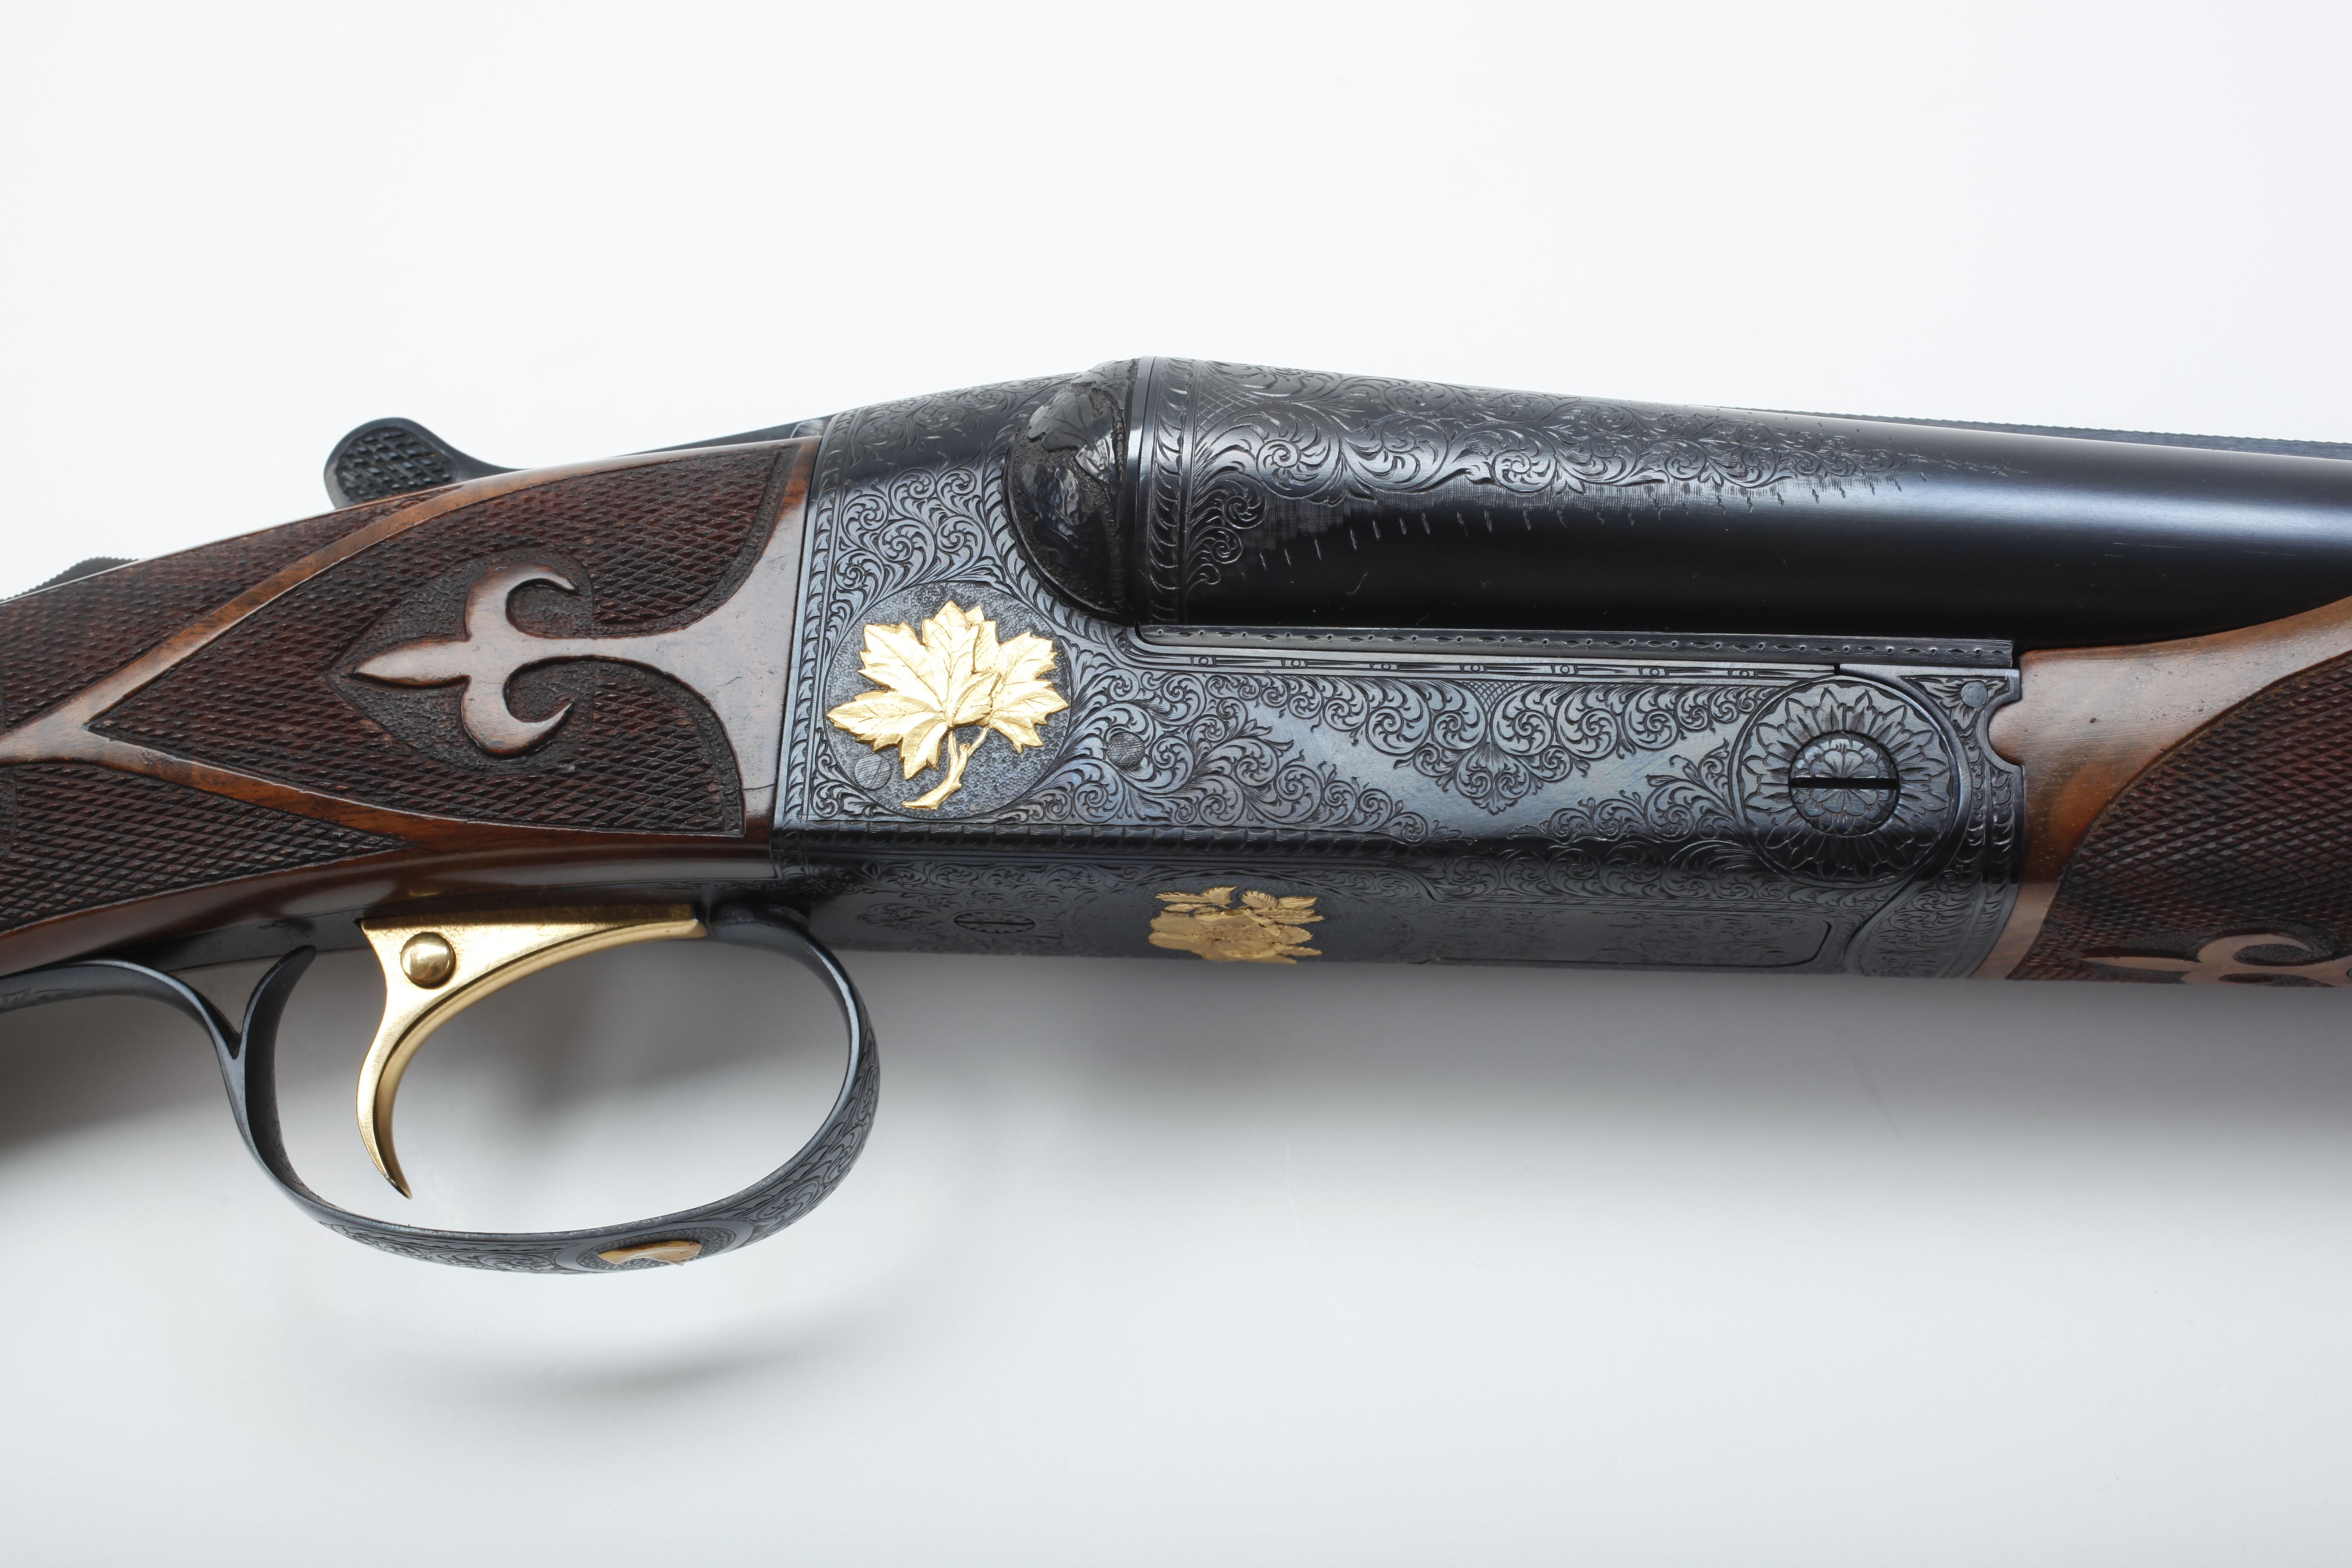 Winchester Model 21 Side-by-Side Shotgun